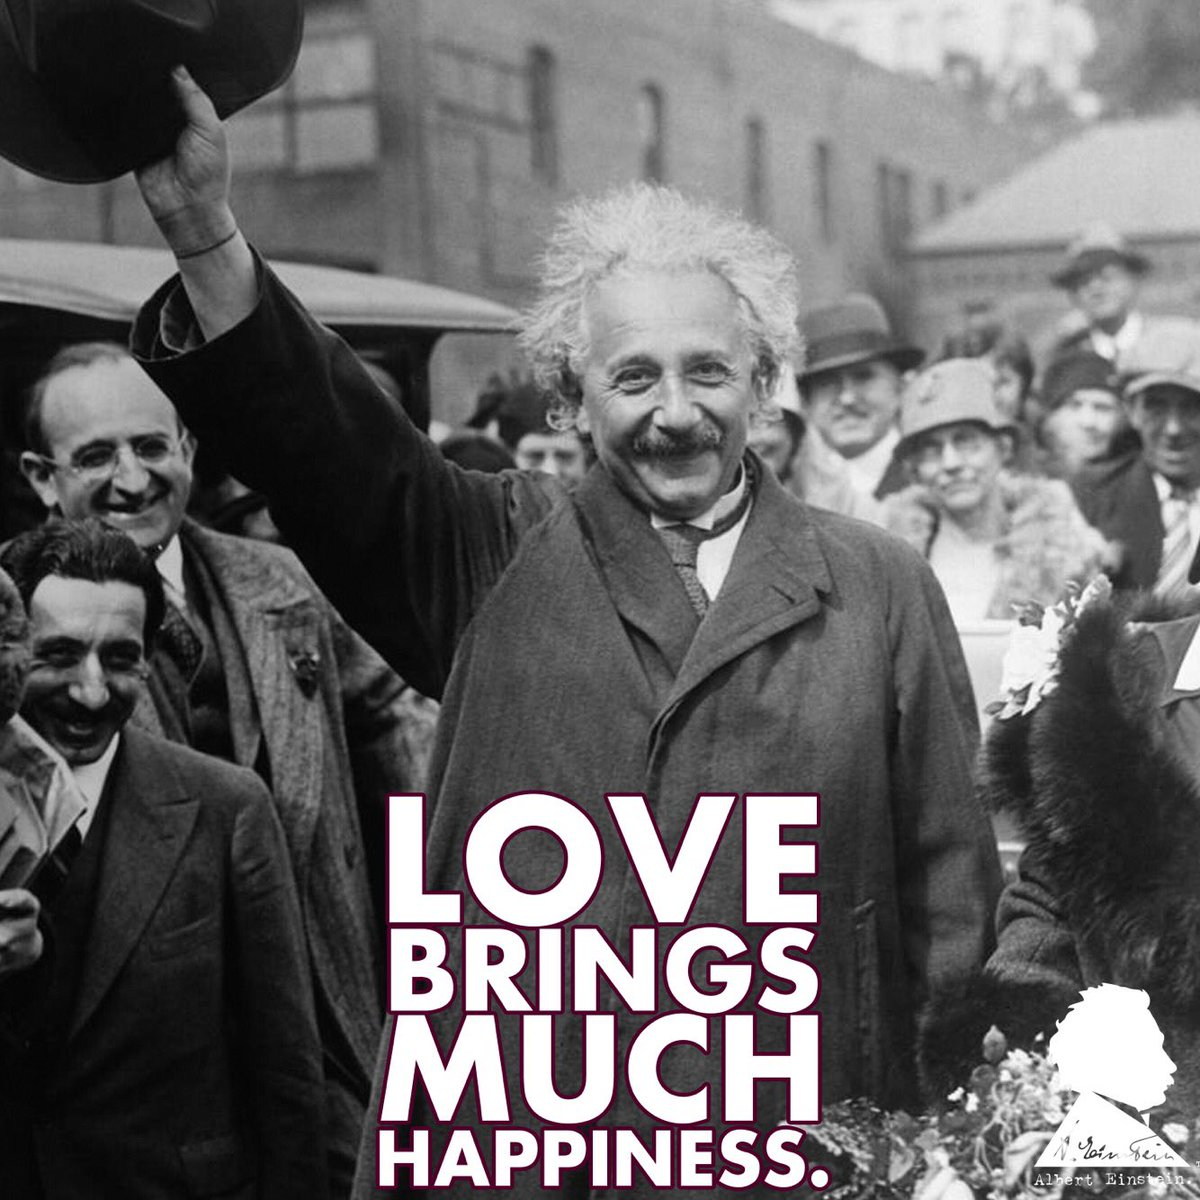 Love brings much happiness, much more so than pinning for someone brings pain. - Albert Einstein